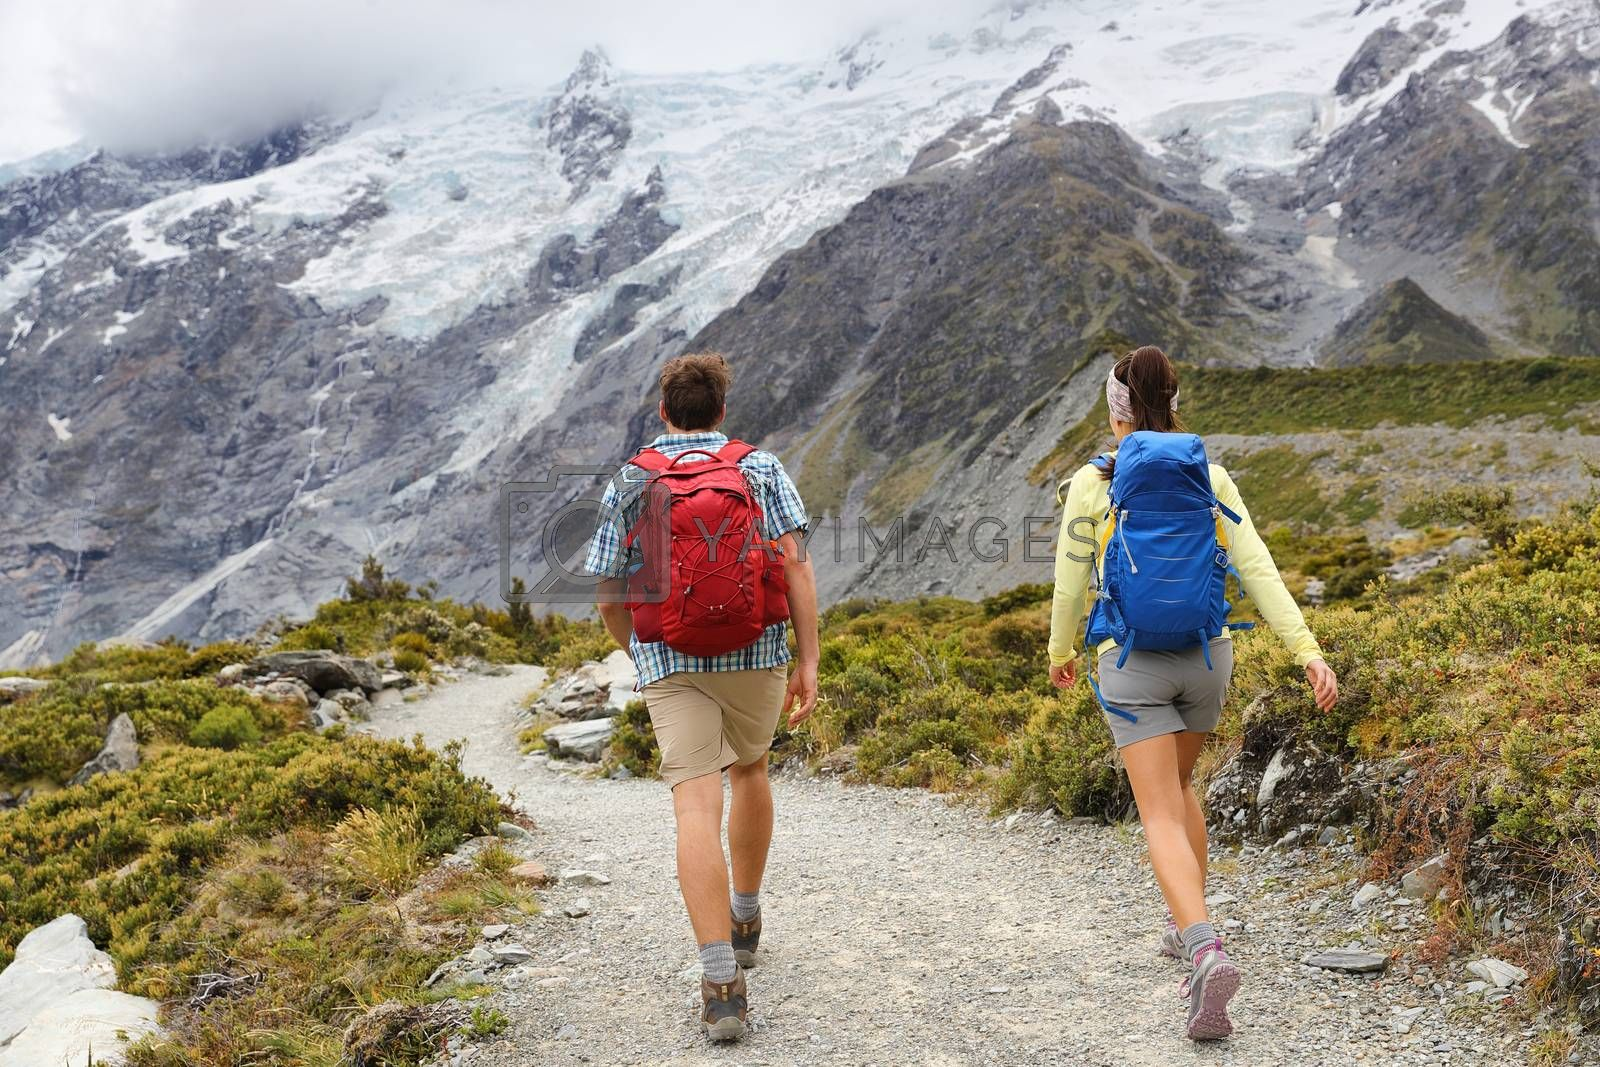 New Zealand travel tramping hikers walking on trail of Hooker Valley Track in New Zealand Aoraki/Mt Cook. Couple tourists hiking in mountains on popular tourist destination. Kiwi trampers with bags.